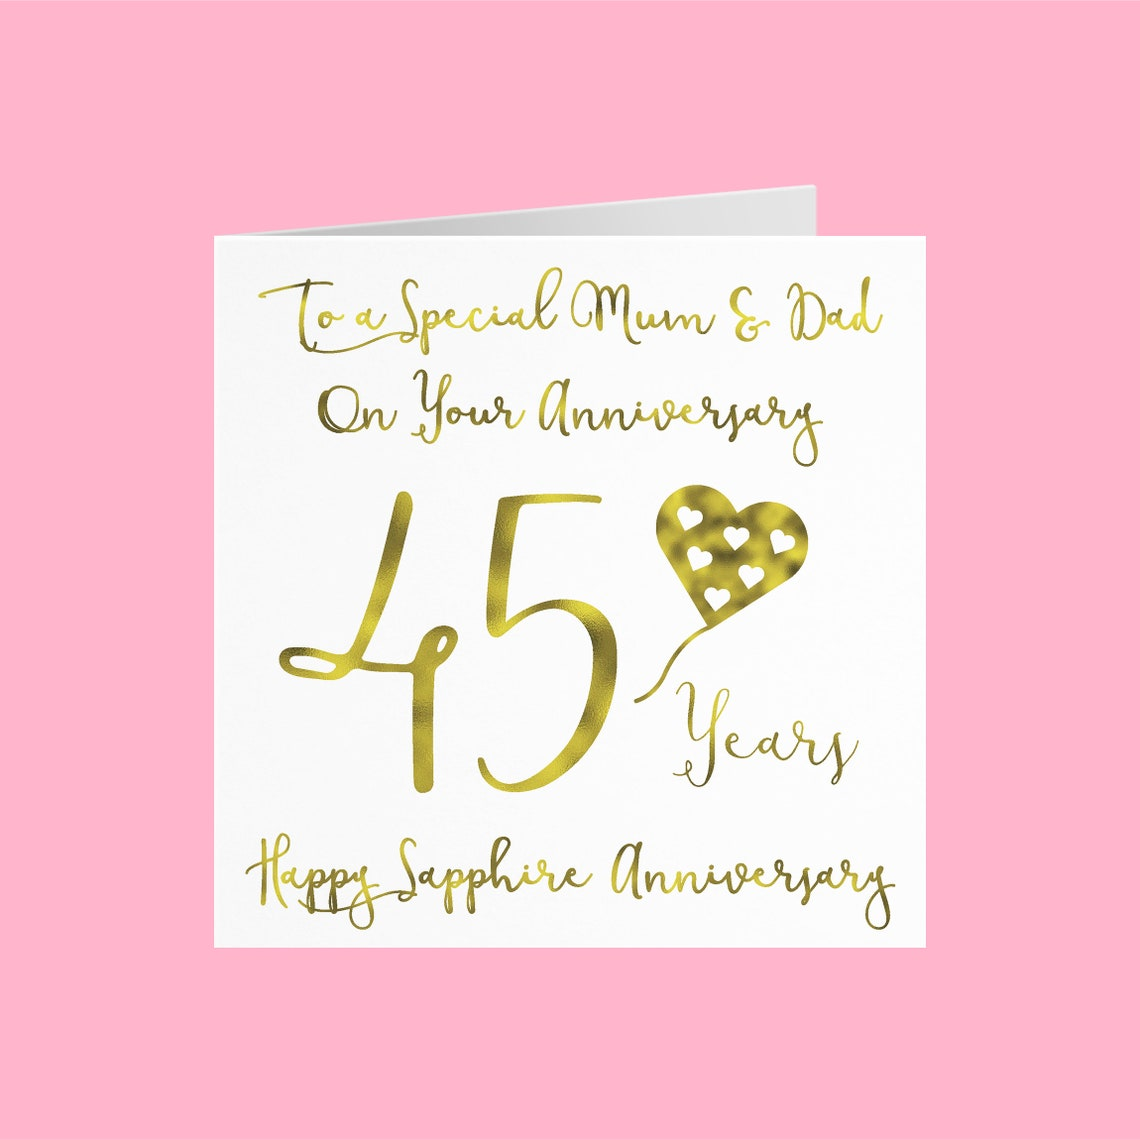 mum and dad  parents 45th anniversary card to a special